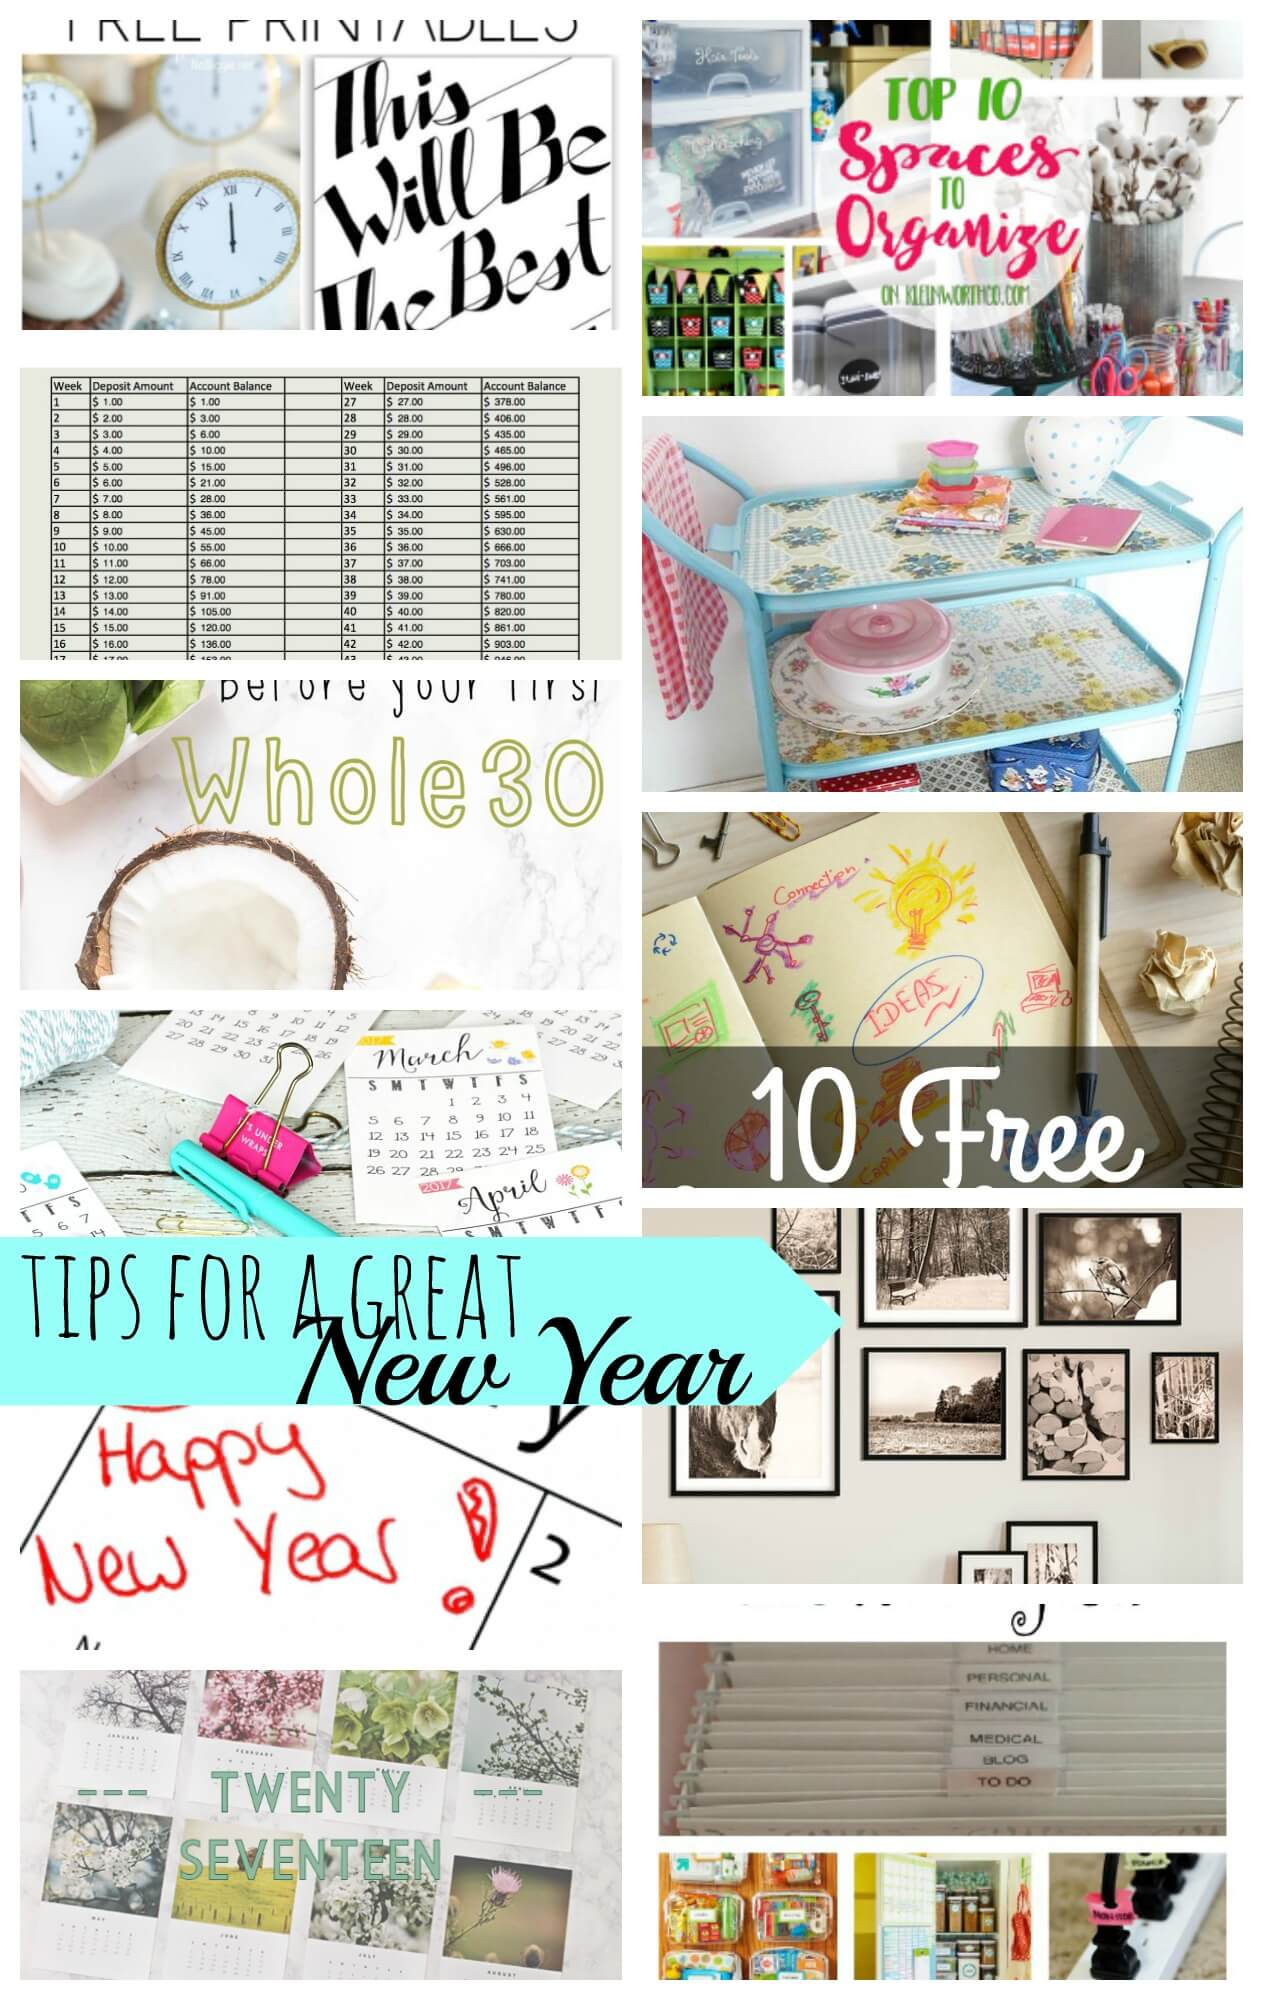 tips for a great new year from Nap-Time Creations